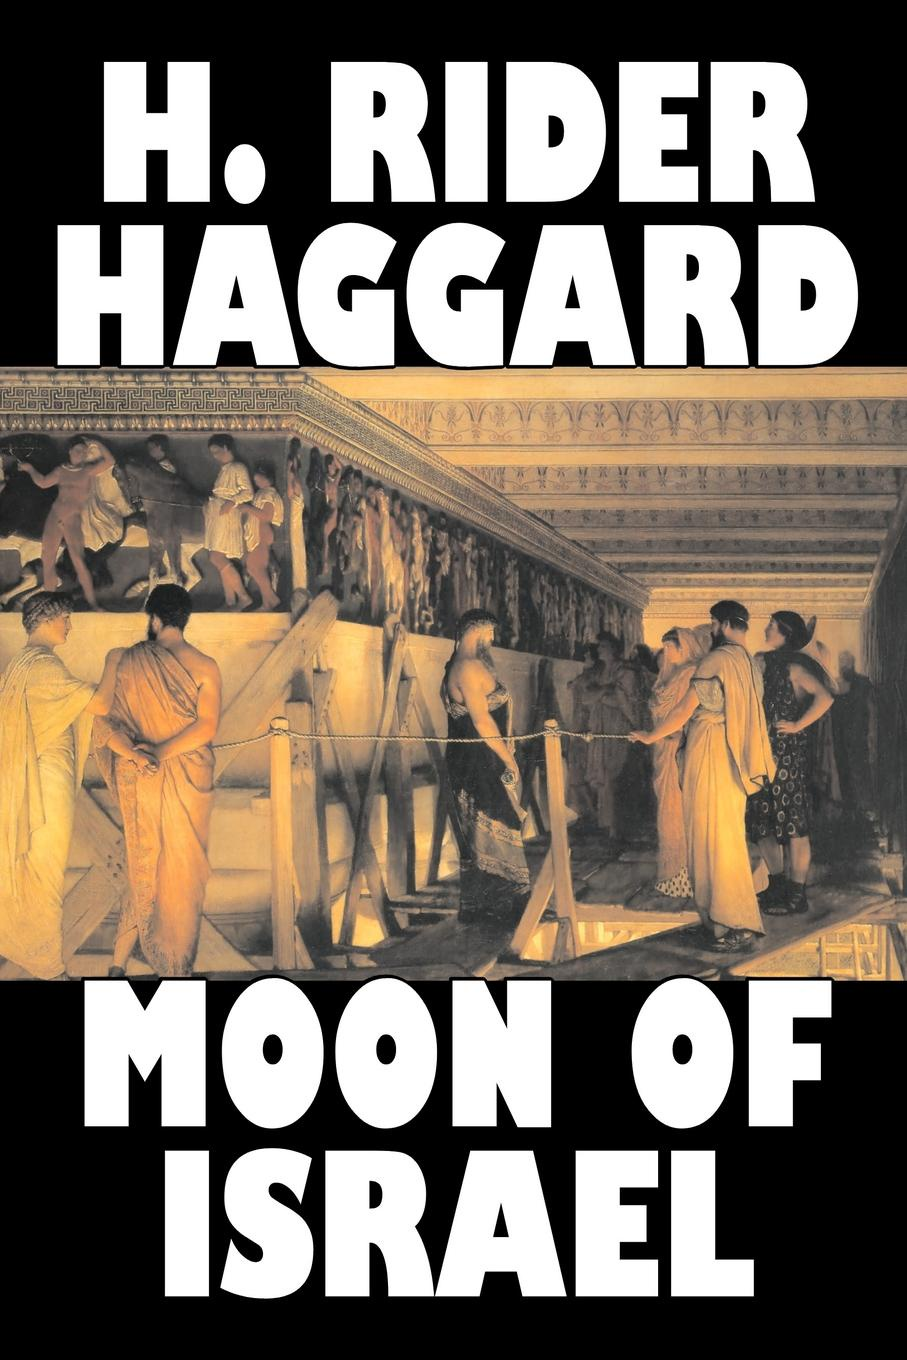 H. Rider Haggard Moon of Israel by H. Rider Haggard, Fiction, Fantasy, Historical, Action & Adventure, Fairy Tales, Folk Tales, Legends & Mythology haggard henry rider moon of israel